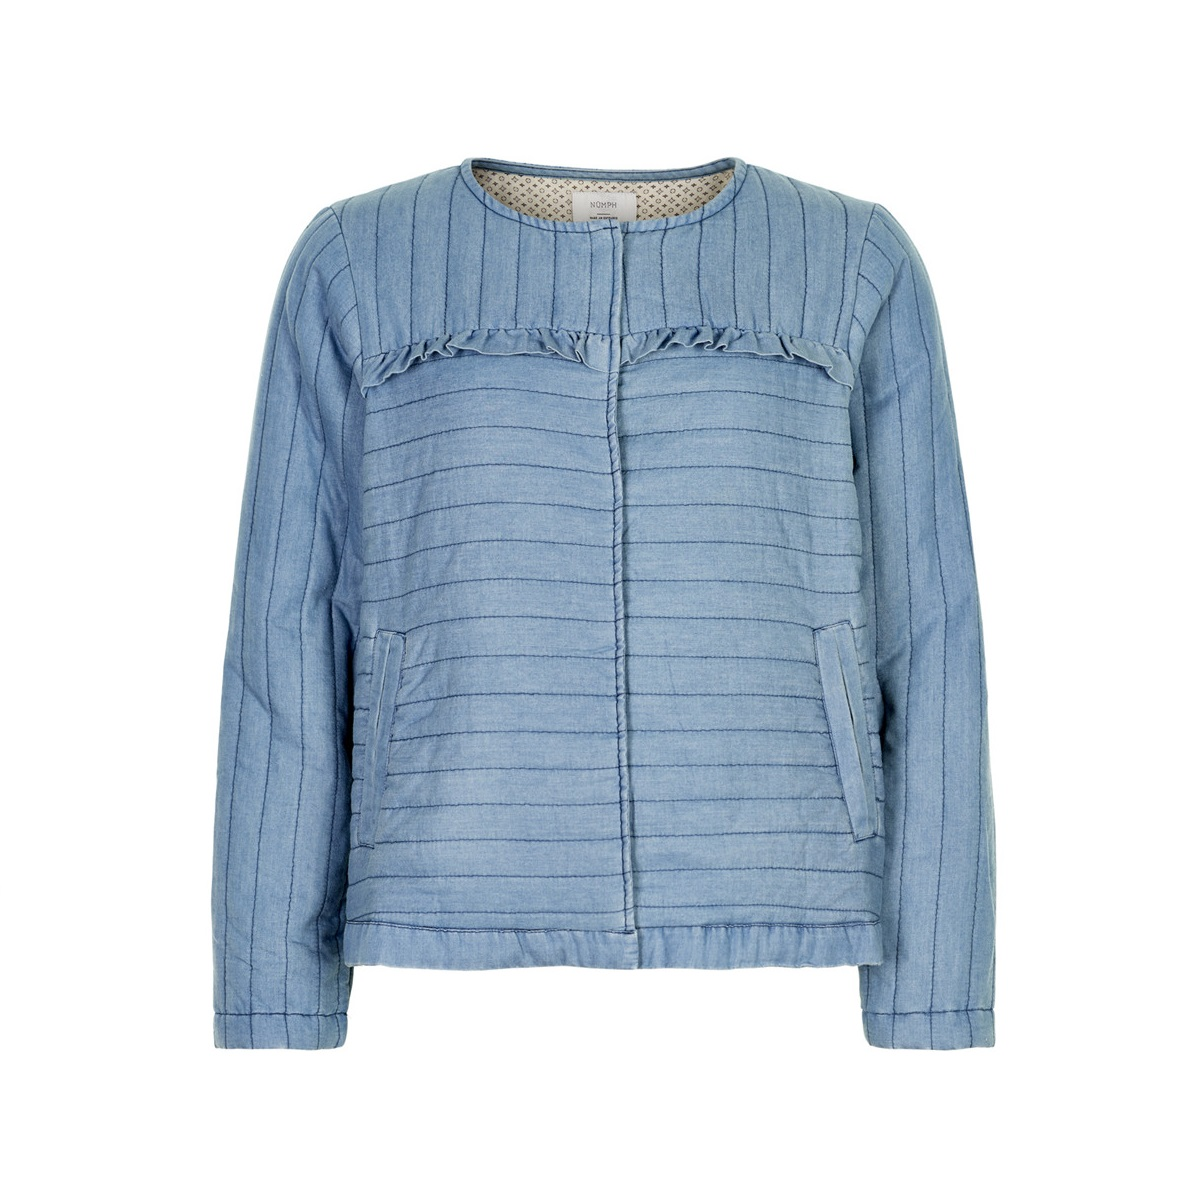 SALE Avelot Blue Quilted Bomber Jacket